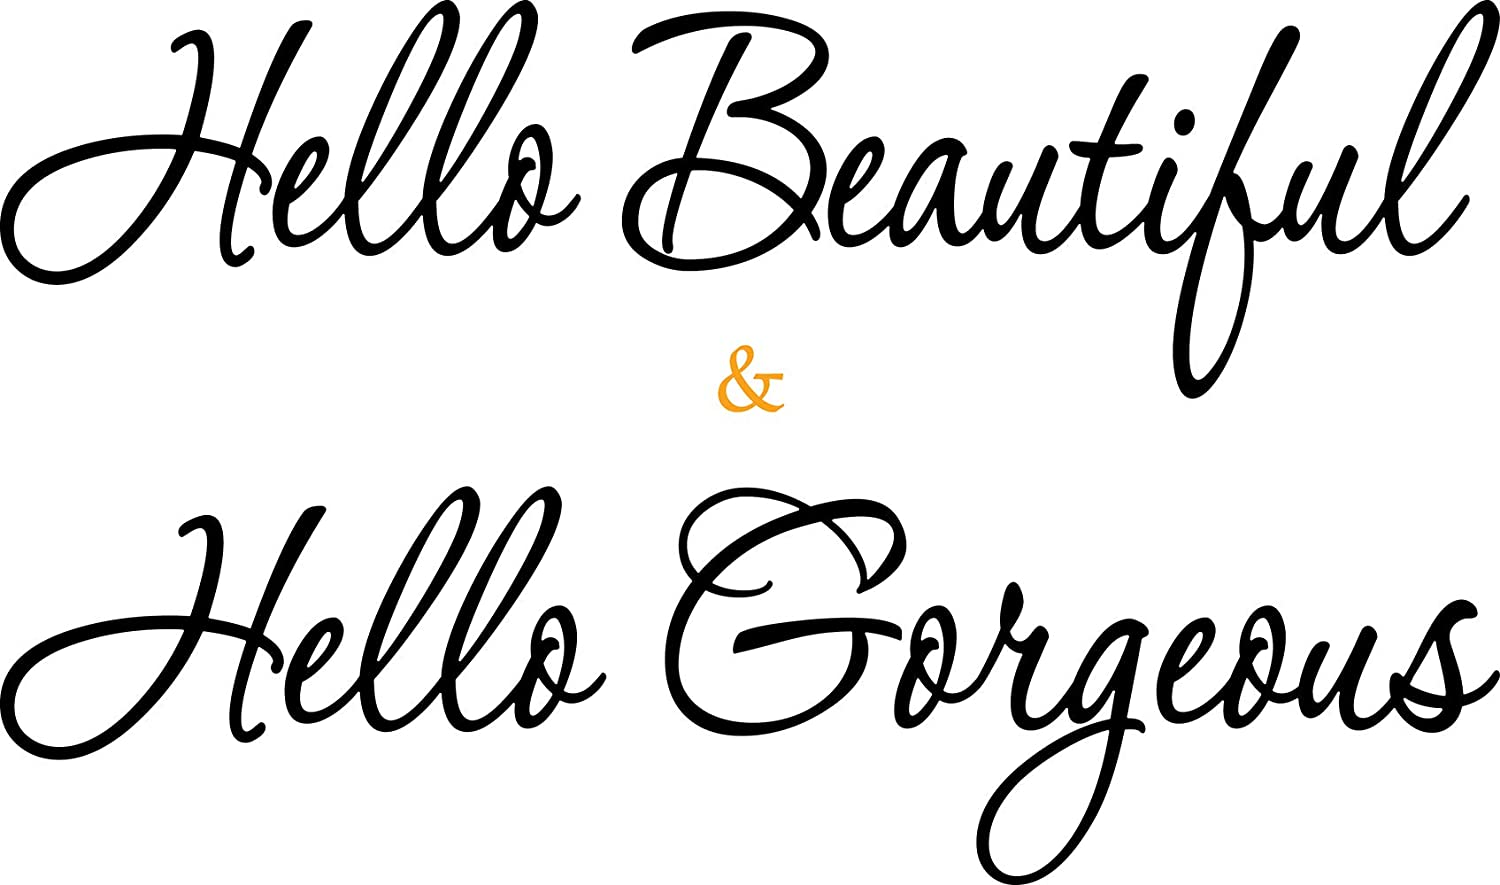 2 Sheets Vinyl Wall Decals Wall Decor, Hello Beautiful, Hello Gorgeous, Wall Decal Inspirational Quotes Mirror Stickers (22.2